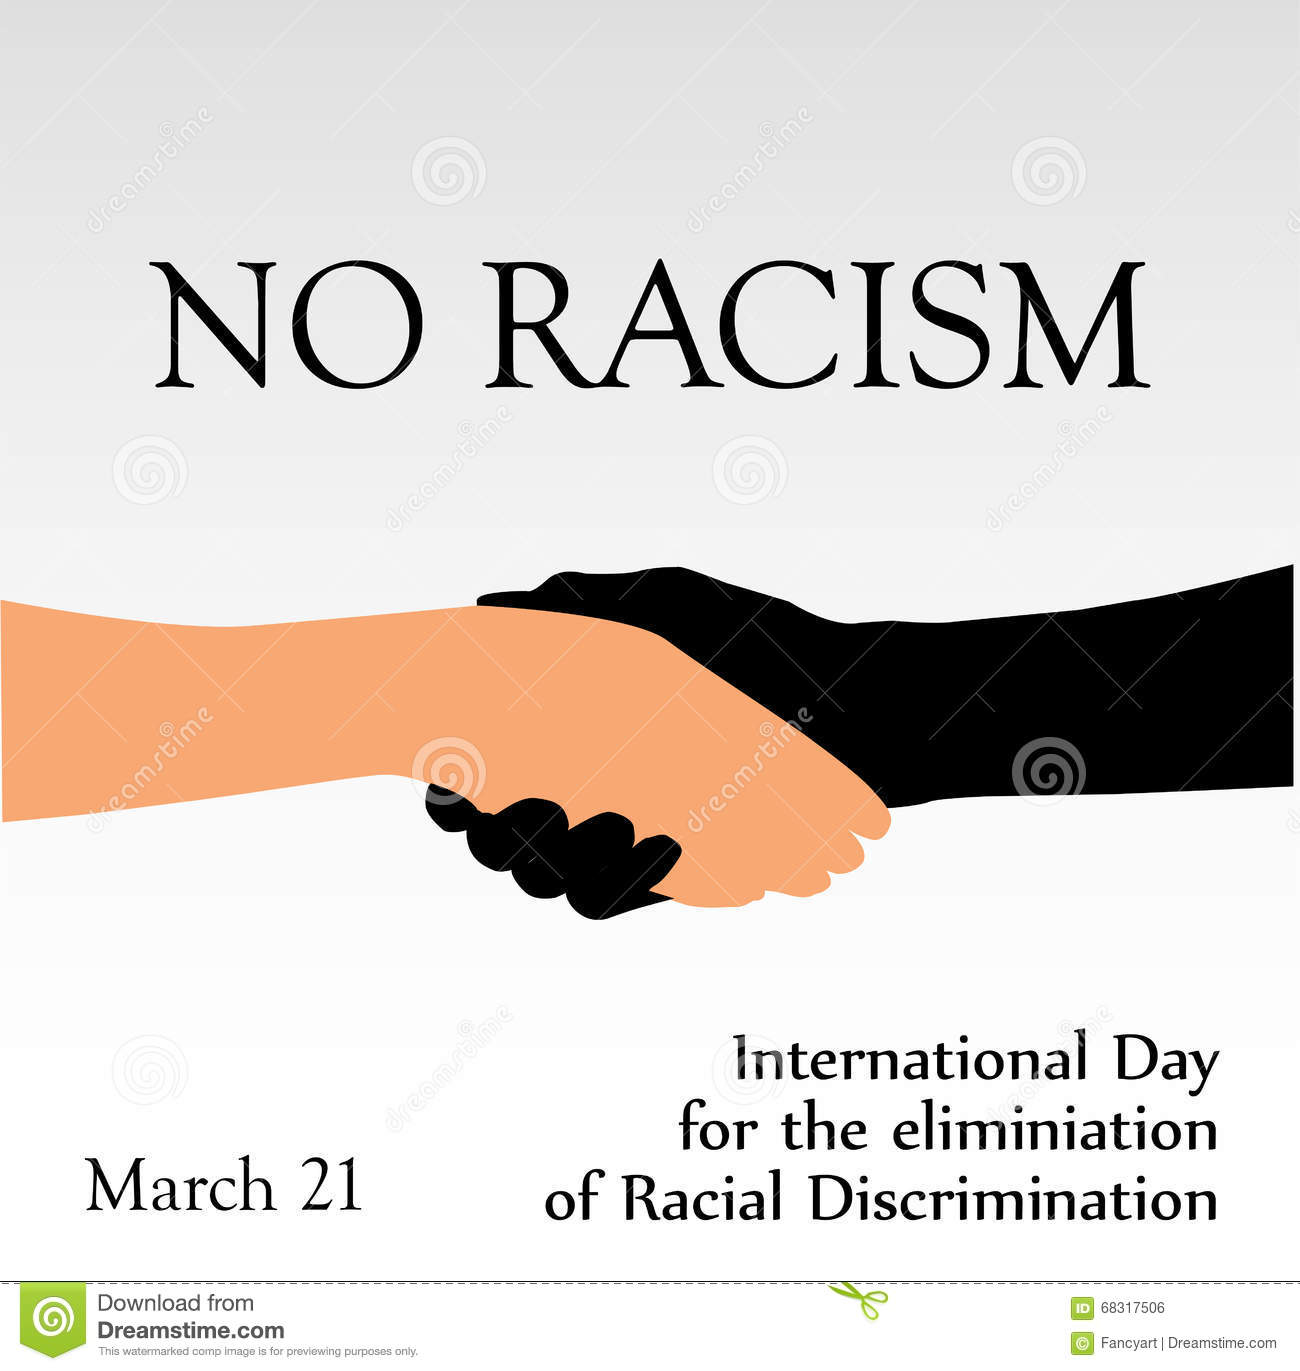 racial ethnic discrimination Achieving racial and ethnic equity and inclusion requires the specific intention to address problems which have historically led to disparity, unequal treatment and.